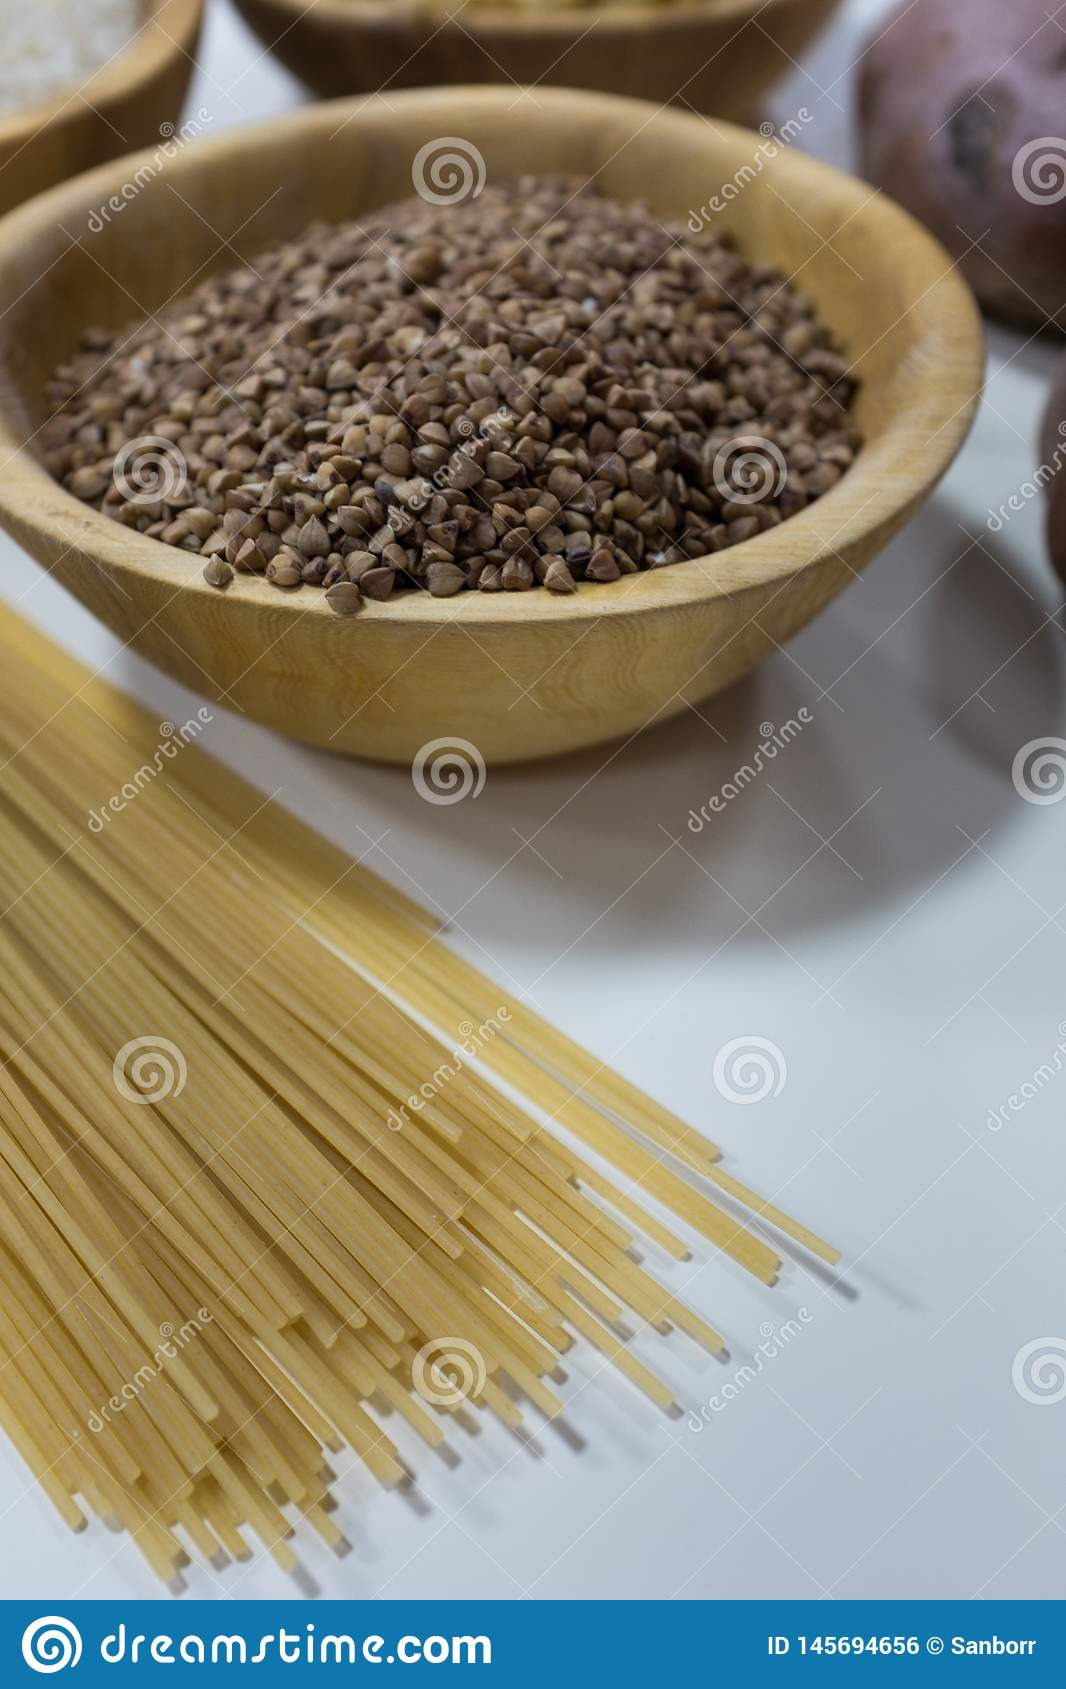 Group of carbohydrates for diet - bread, rice, potatoes and pasta on a wood table in the background